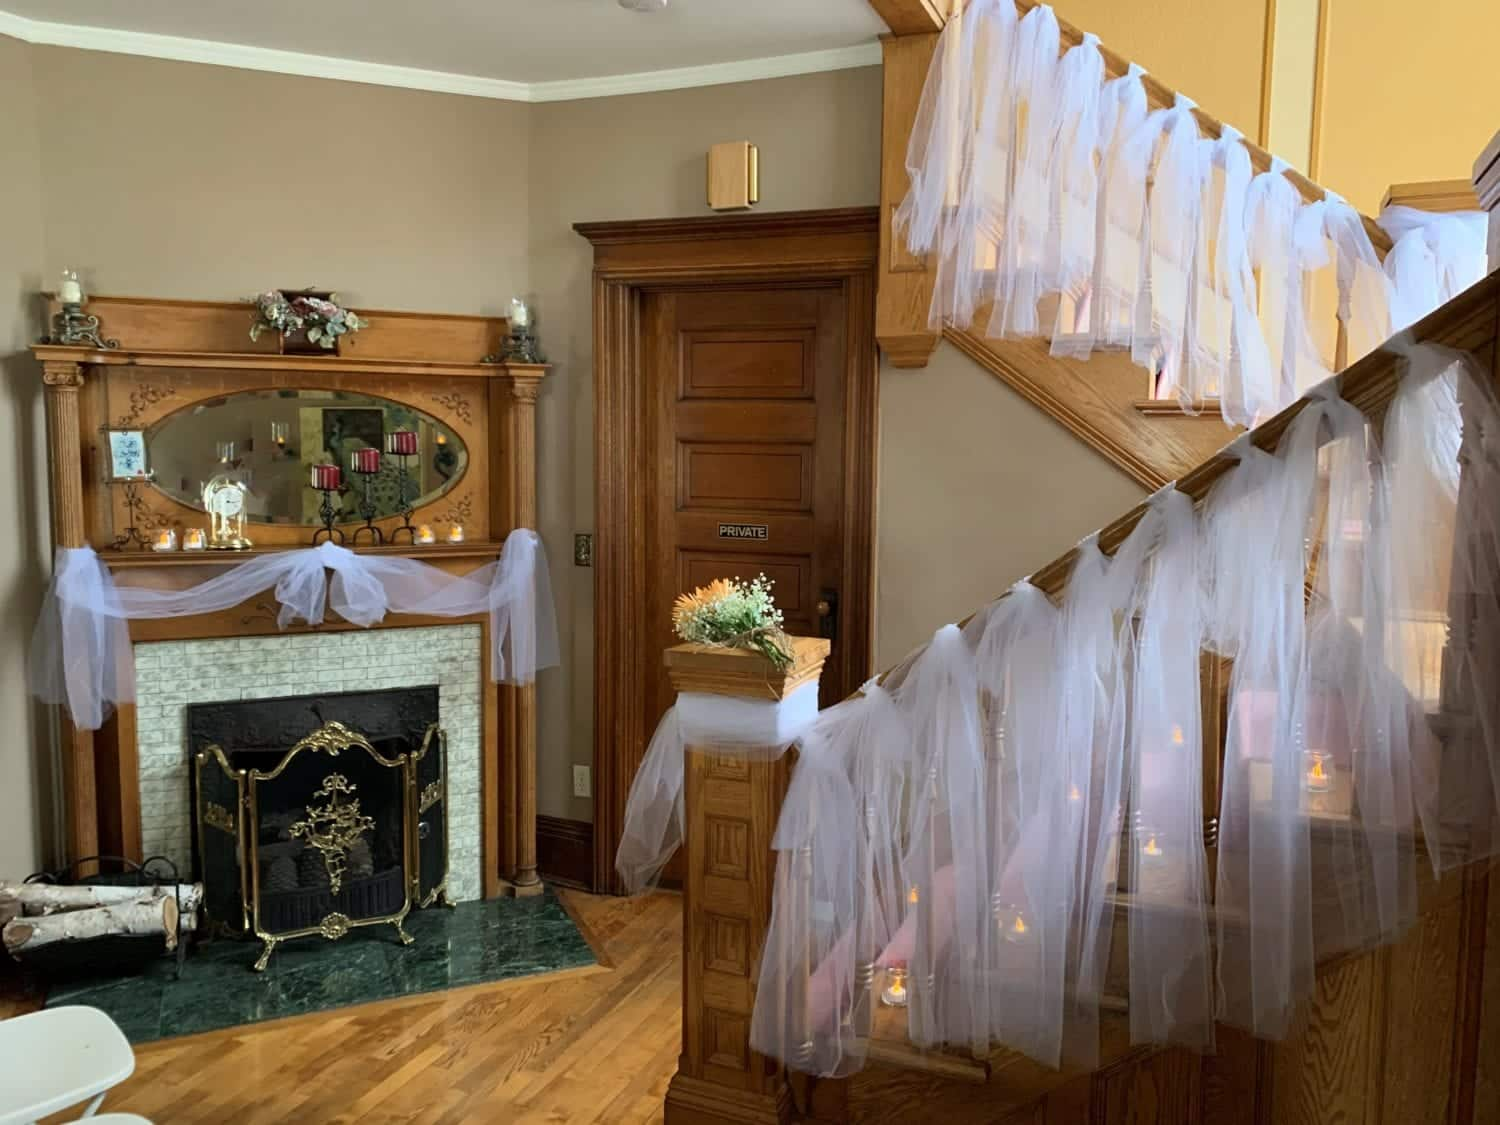 Beautiful wooden Grand staircase and fireplace mantle decorated in white tulle fabric for a wedding